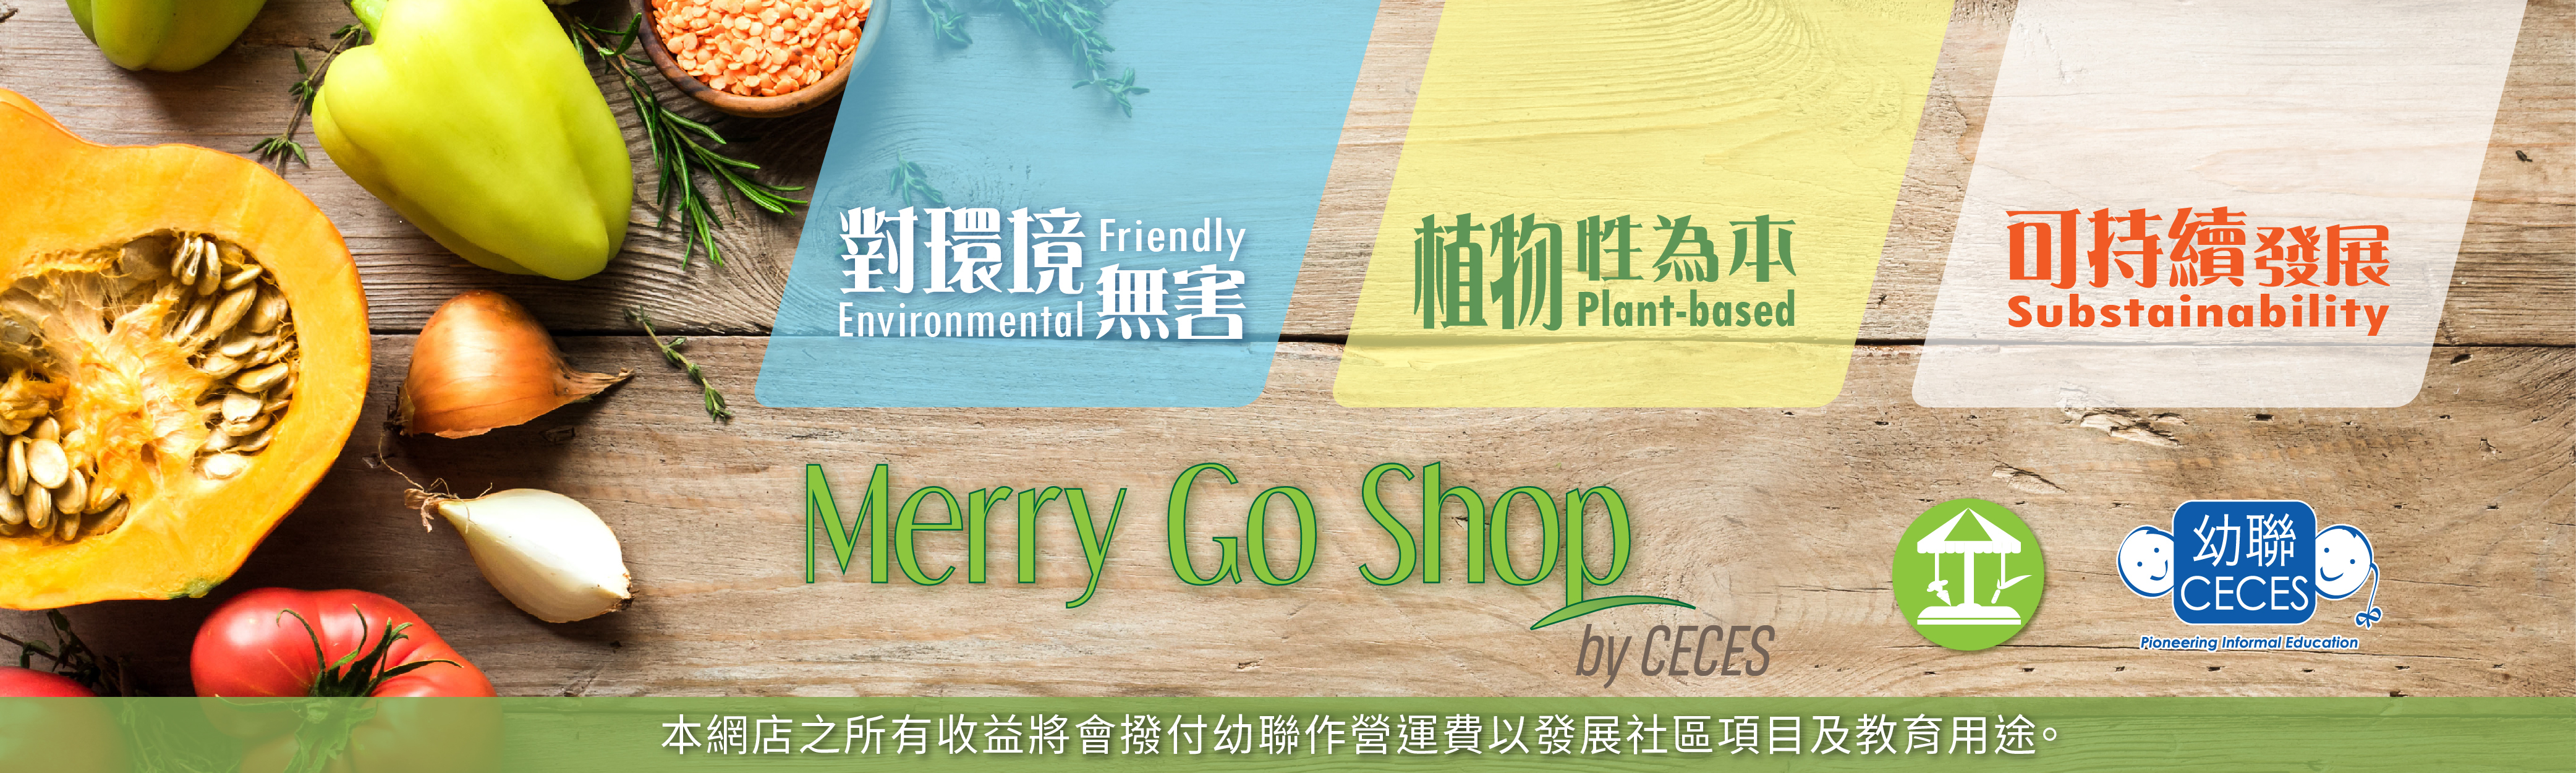 About merrygoshop